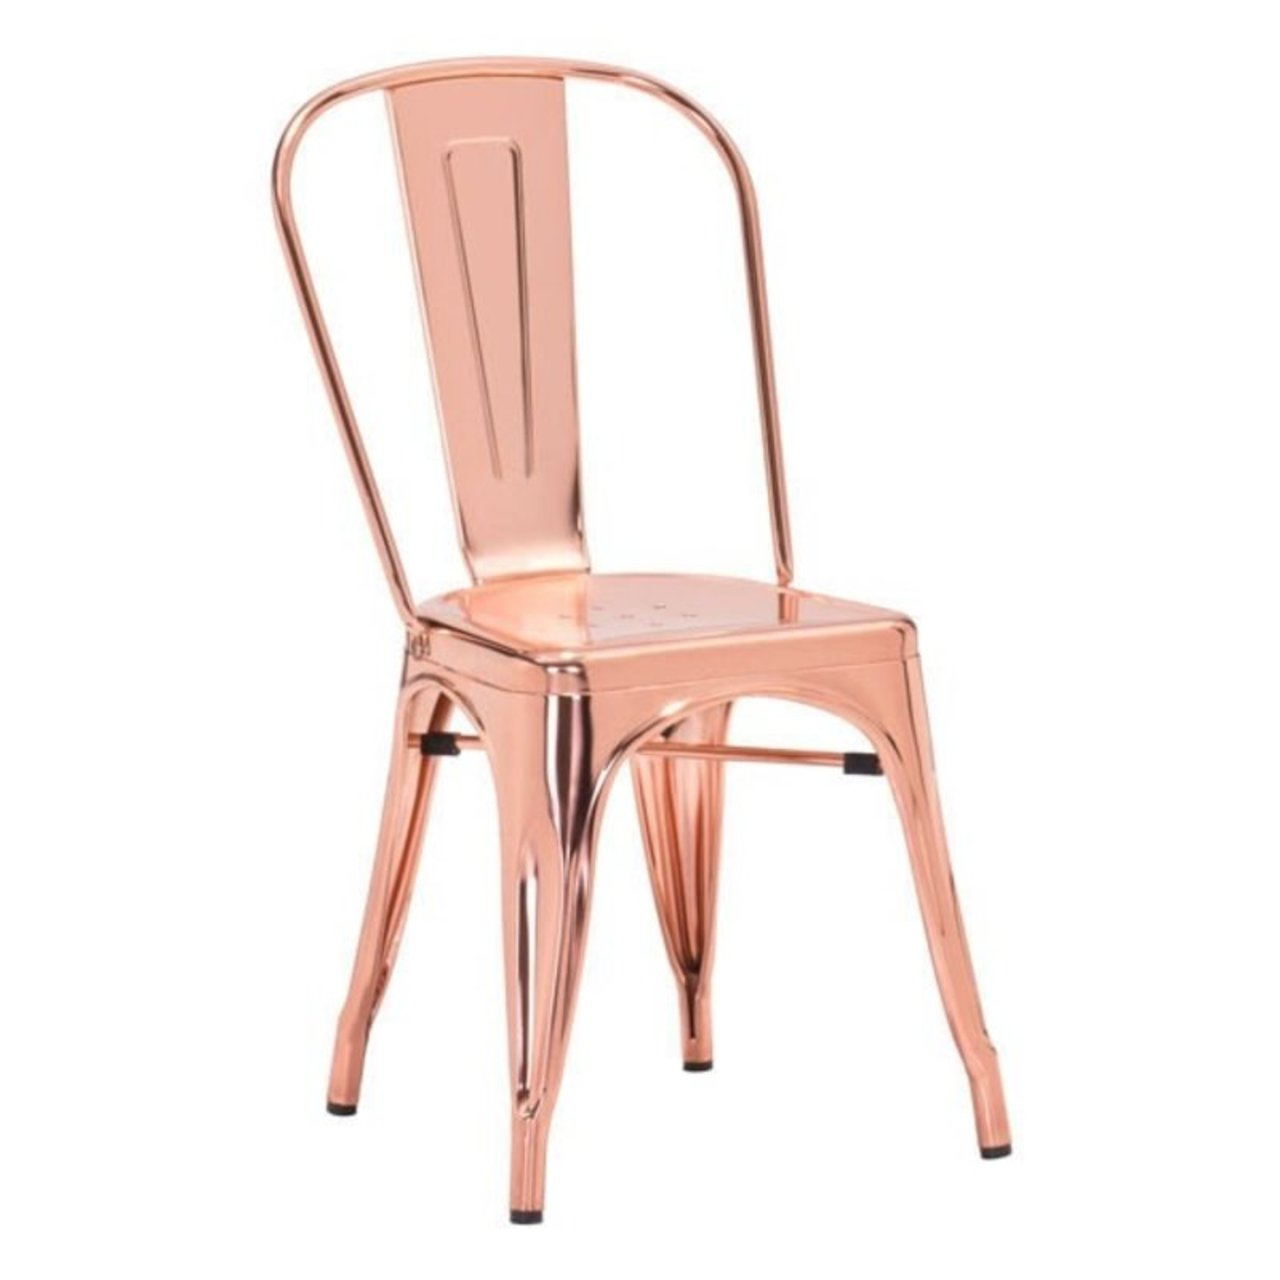 three ways to style a covetable rose gold dining chair